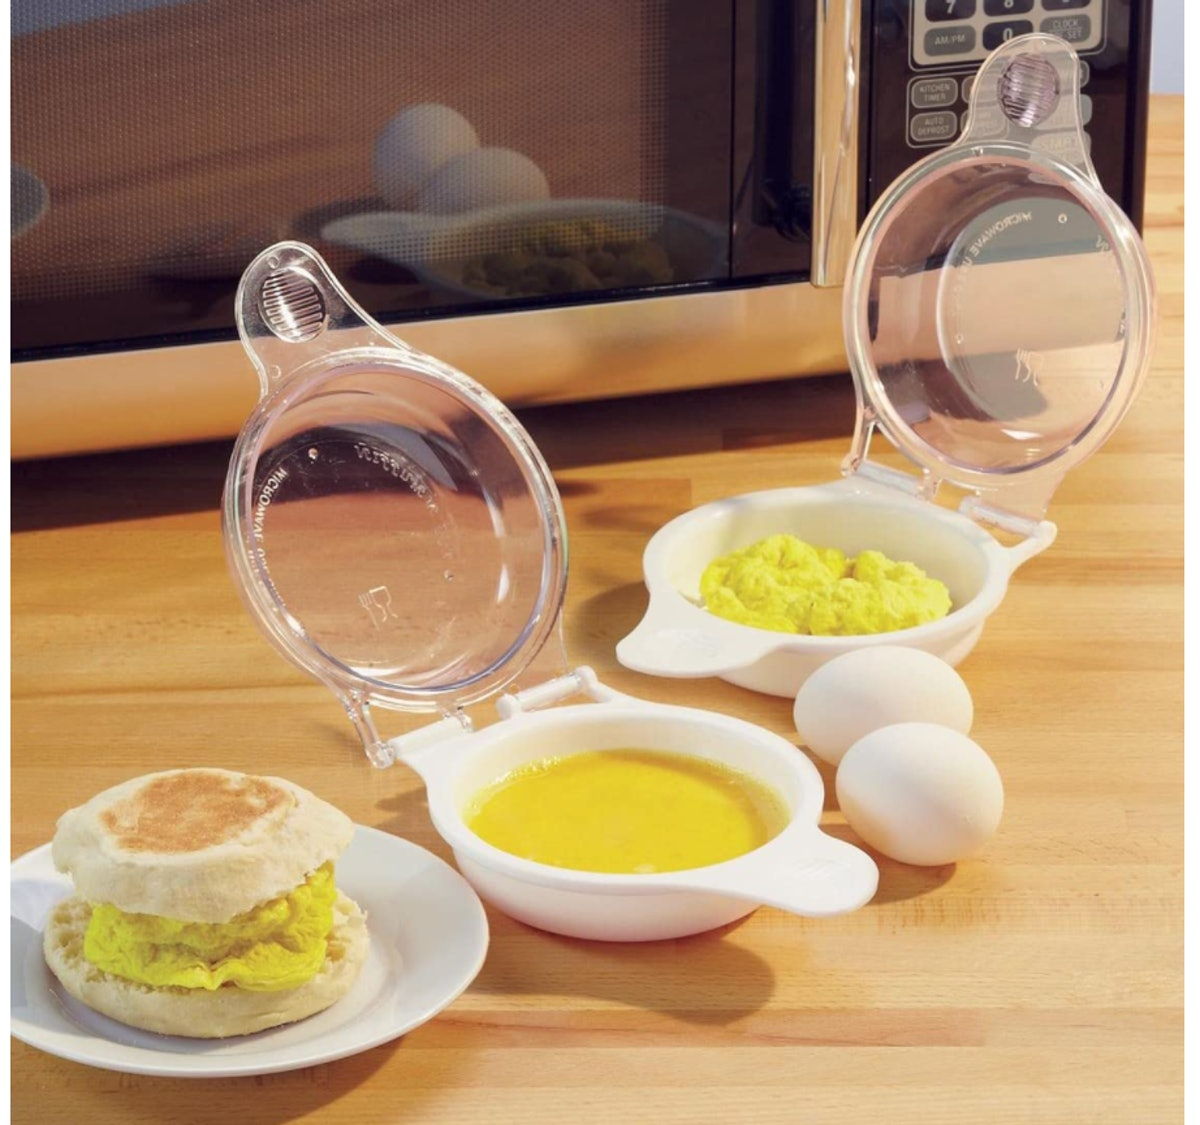 Old Home Kitchen Microwave Egg Cooker